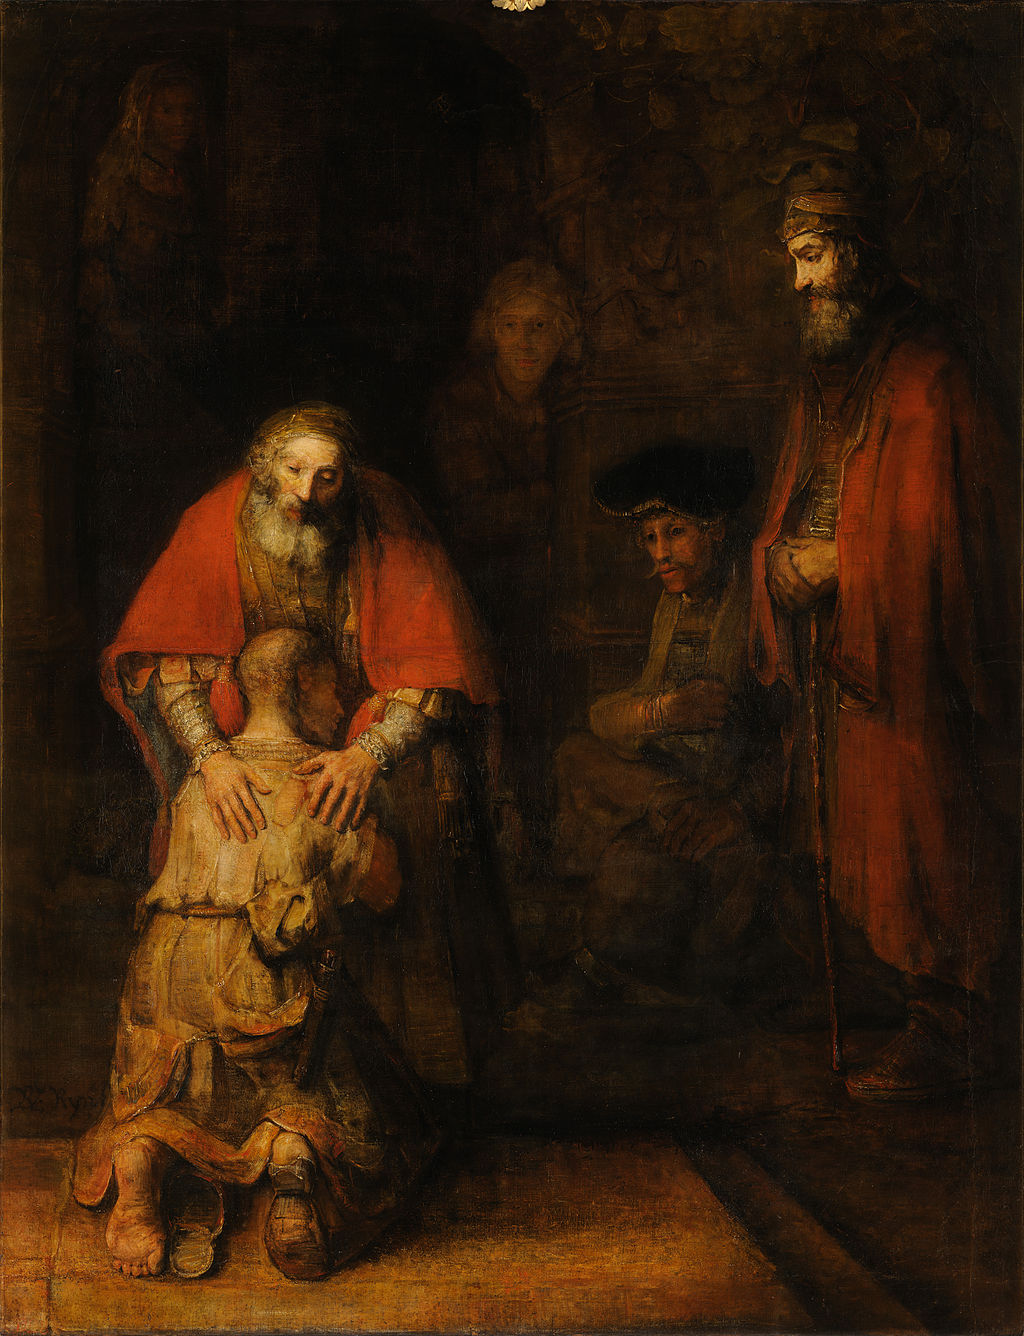 Rembrandt_Harmensz_van_Rijn_-_Return_of_the_Prodigal_Son_-_Google_Art_Project.jpg